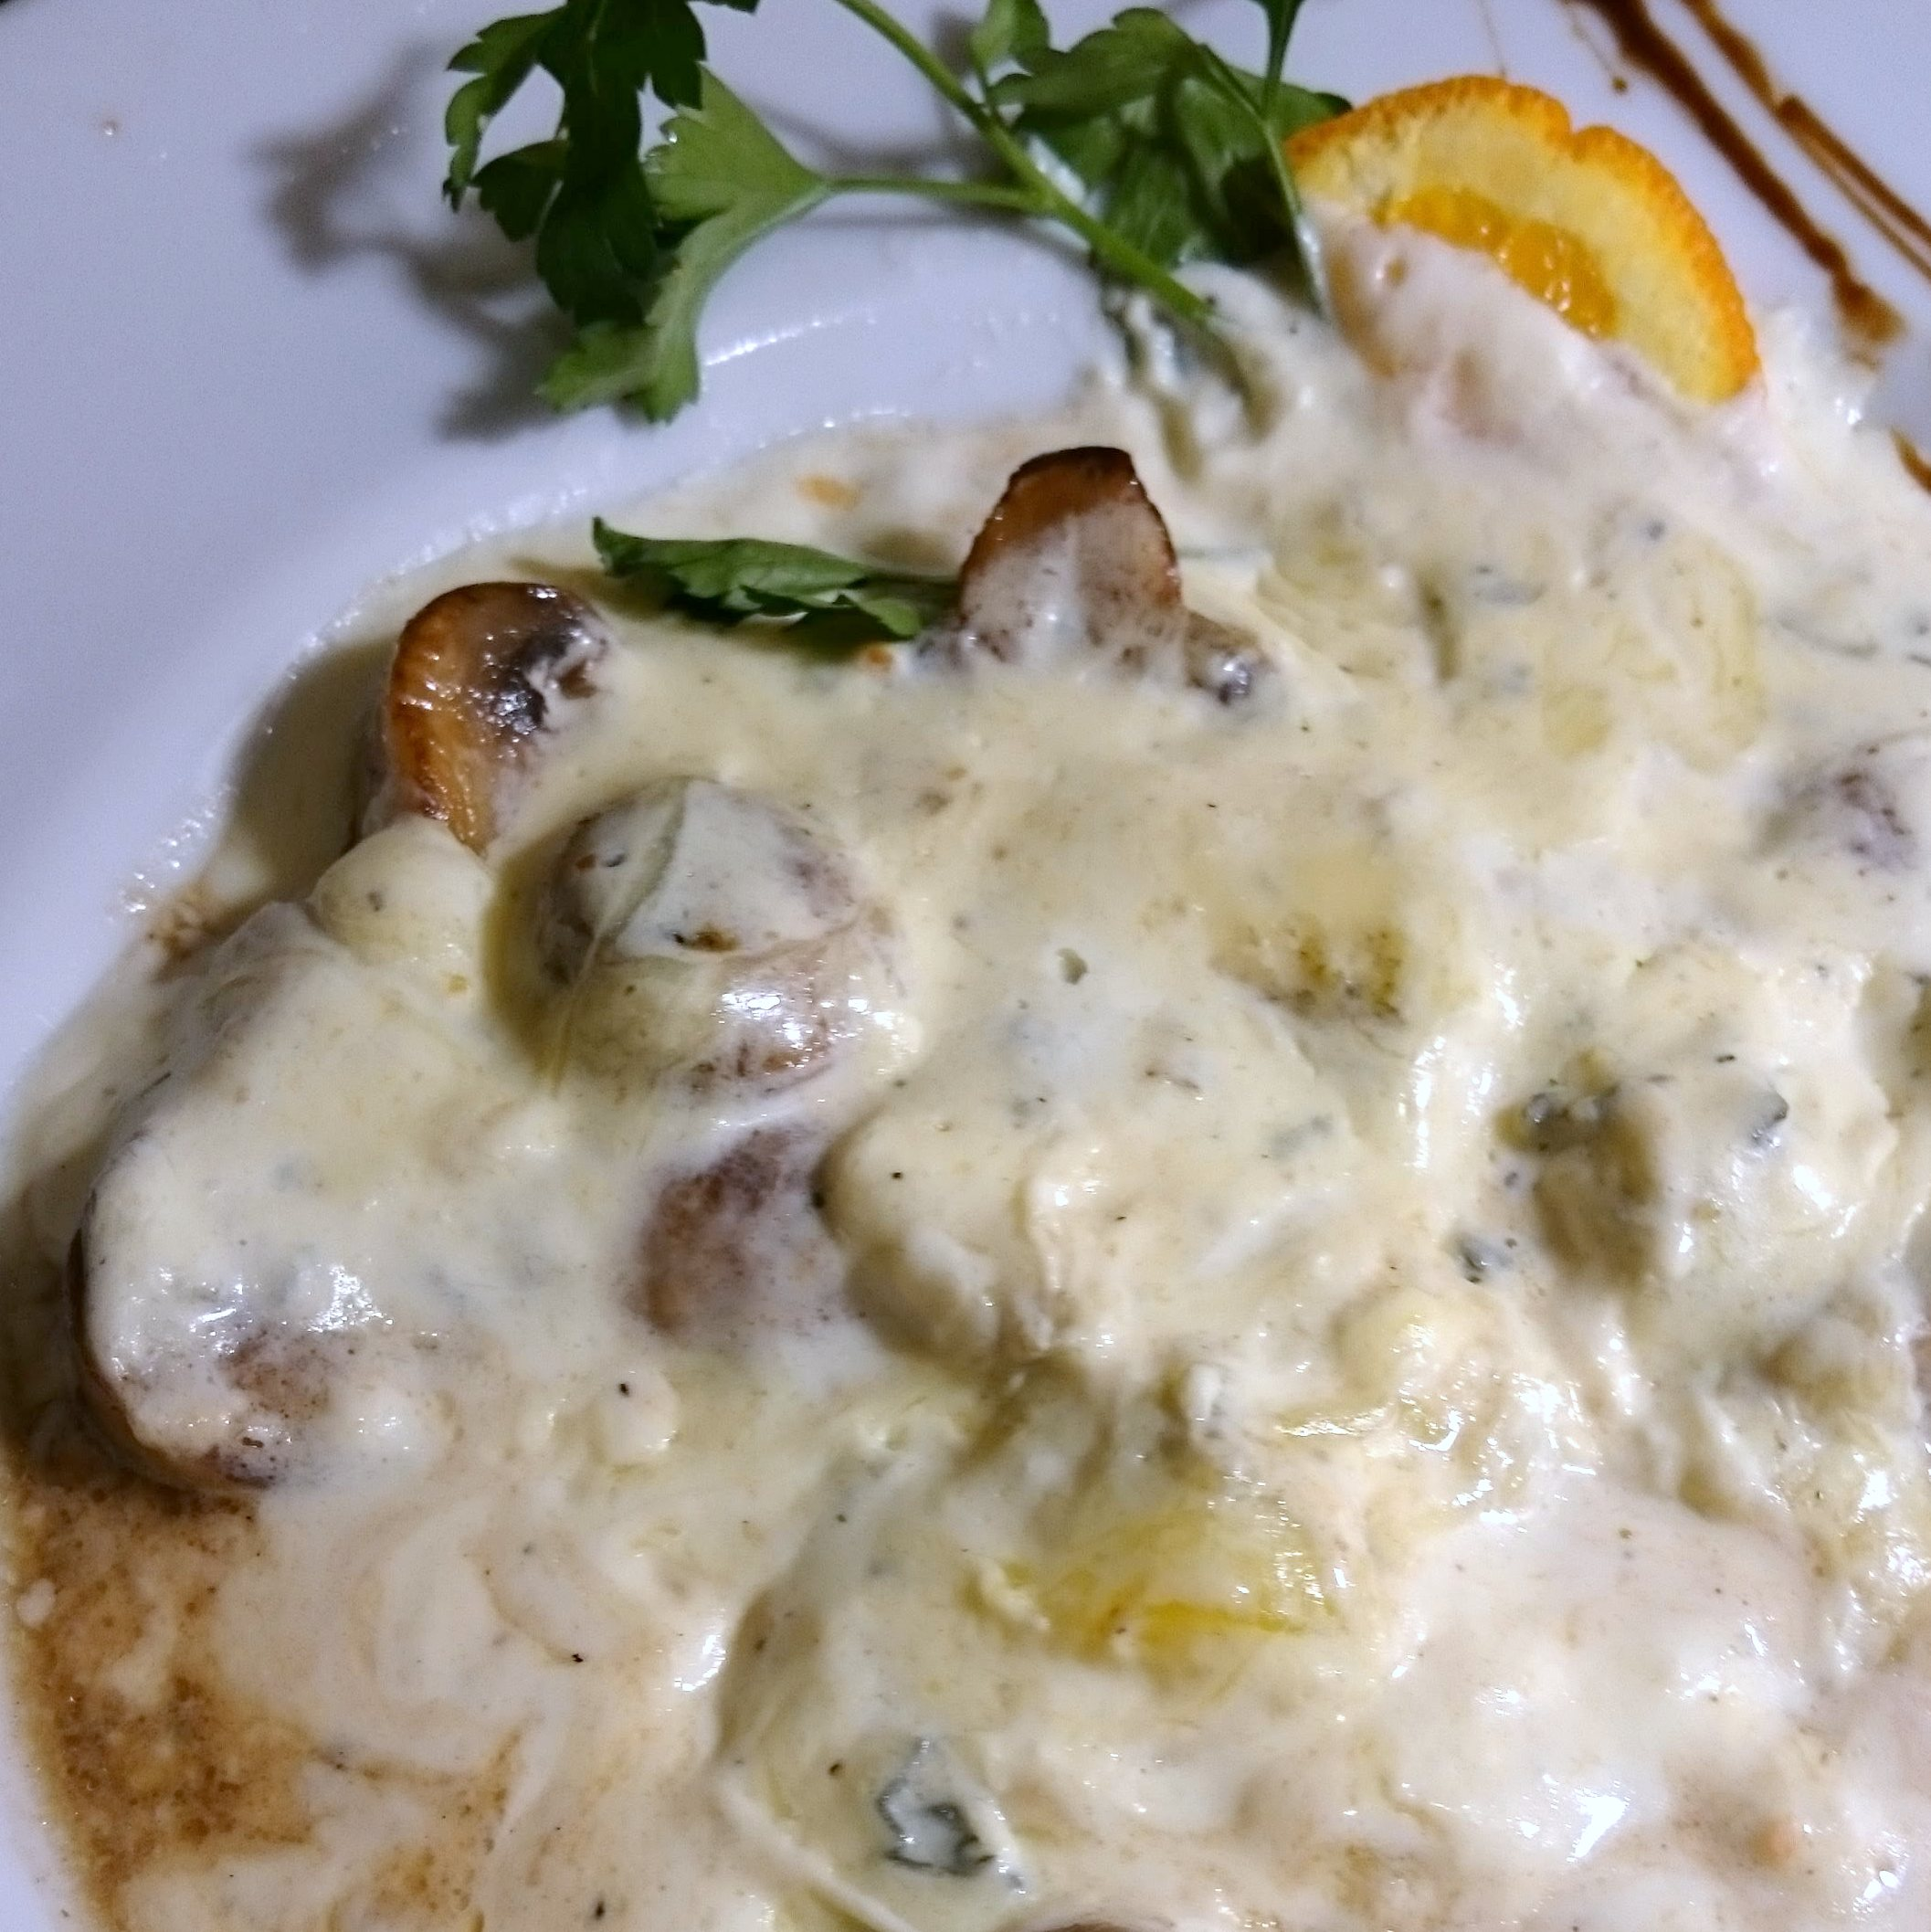 Mushrooms. Gorgonzola sauce. Amazing.